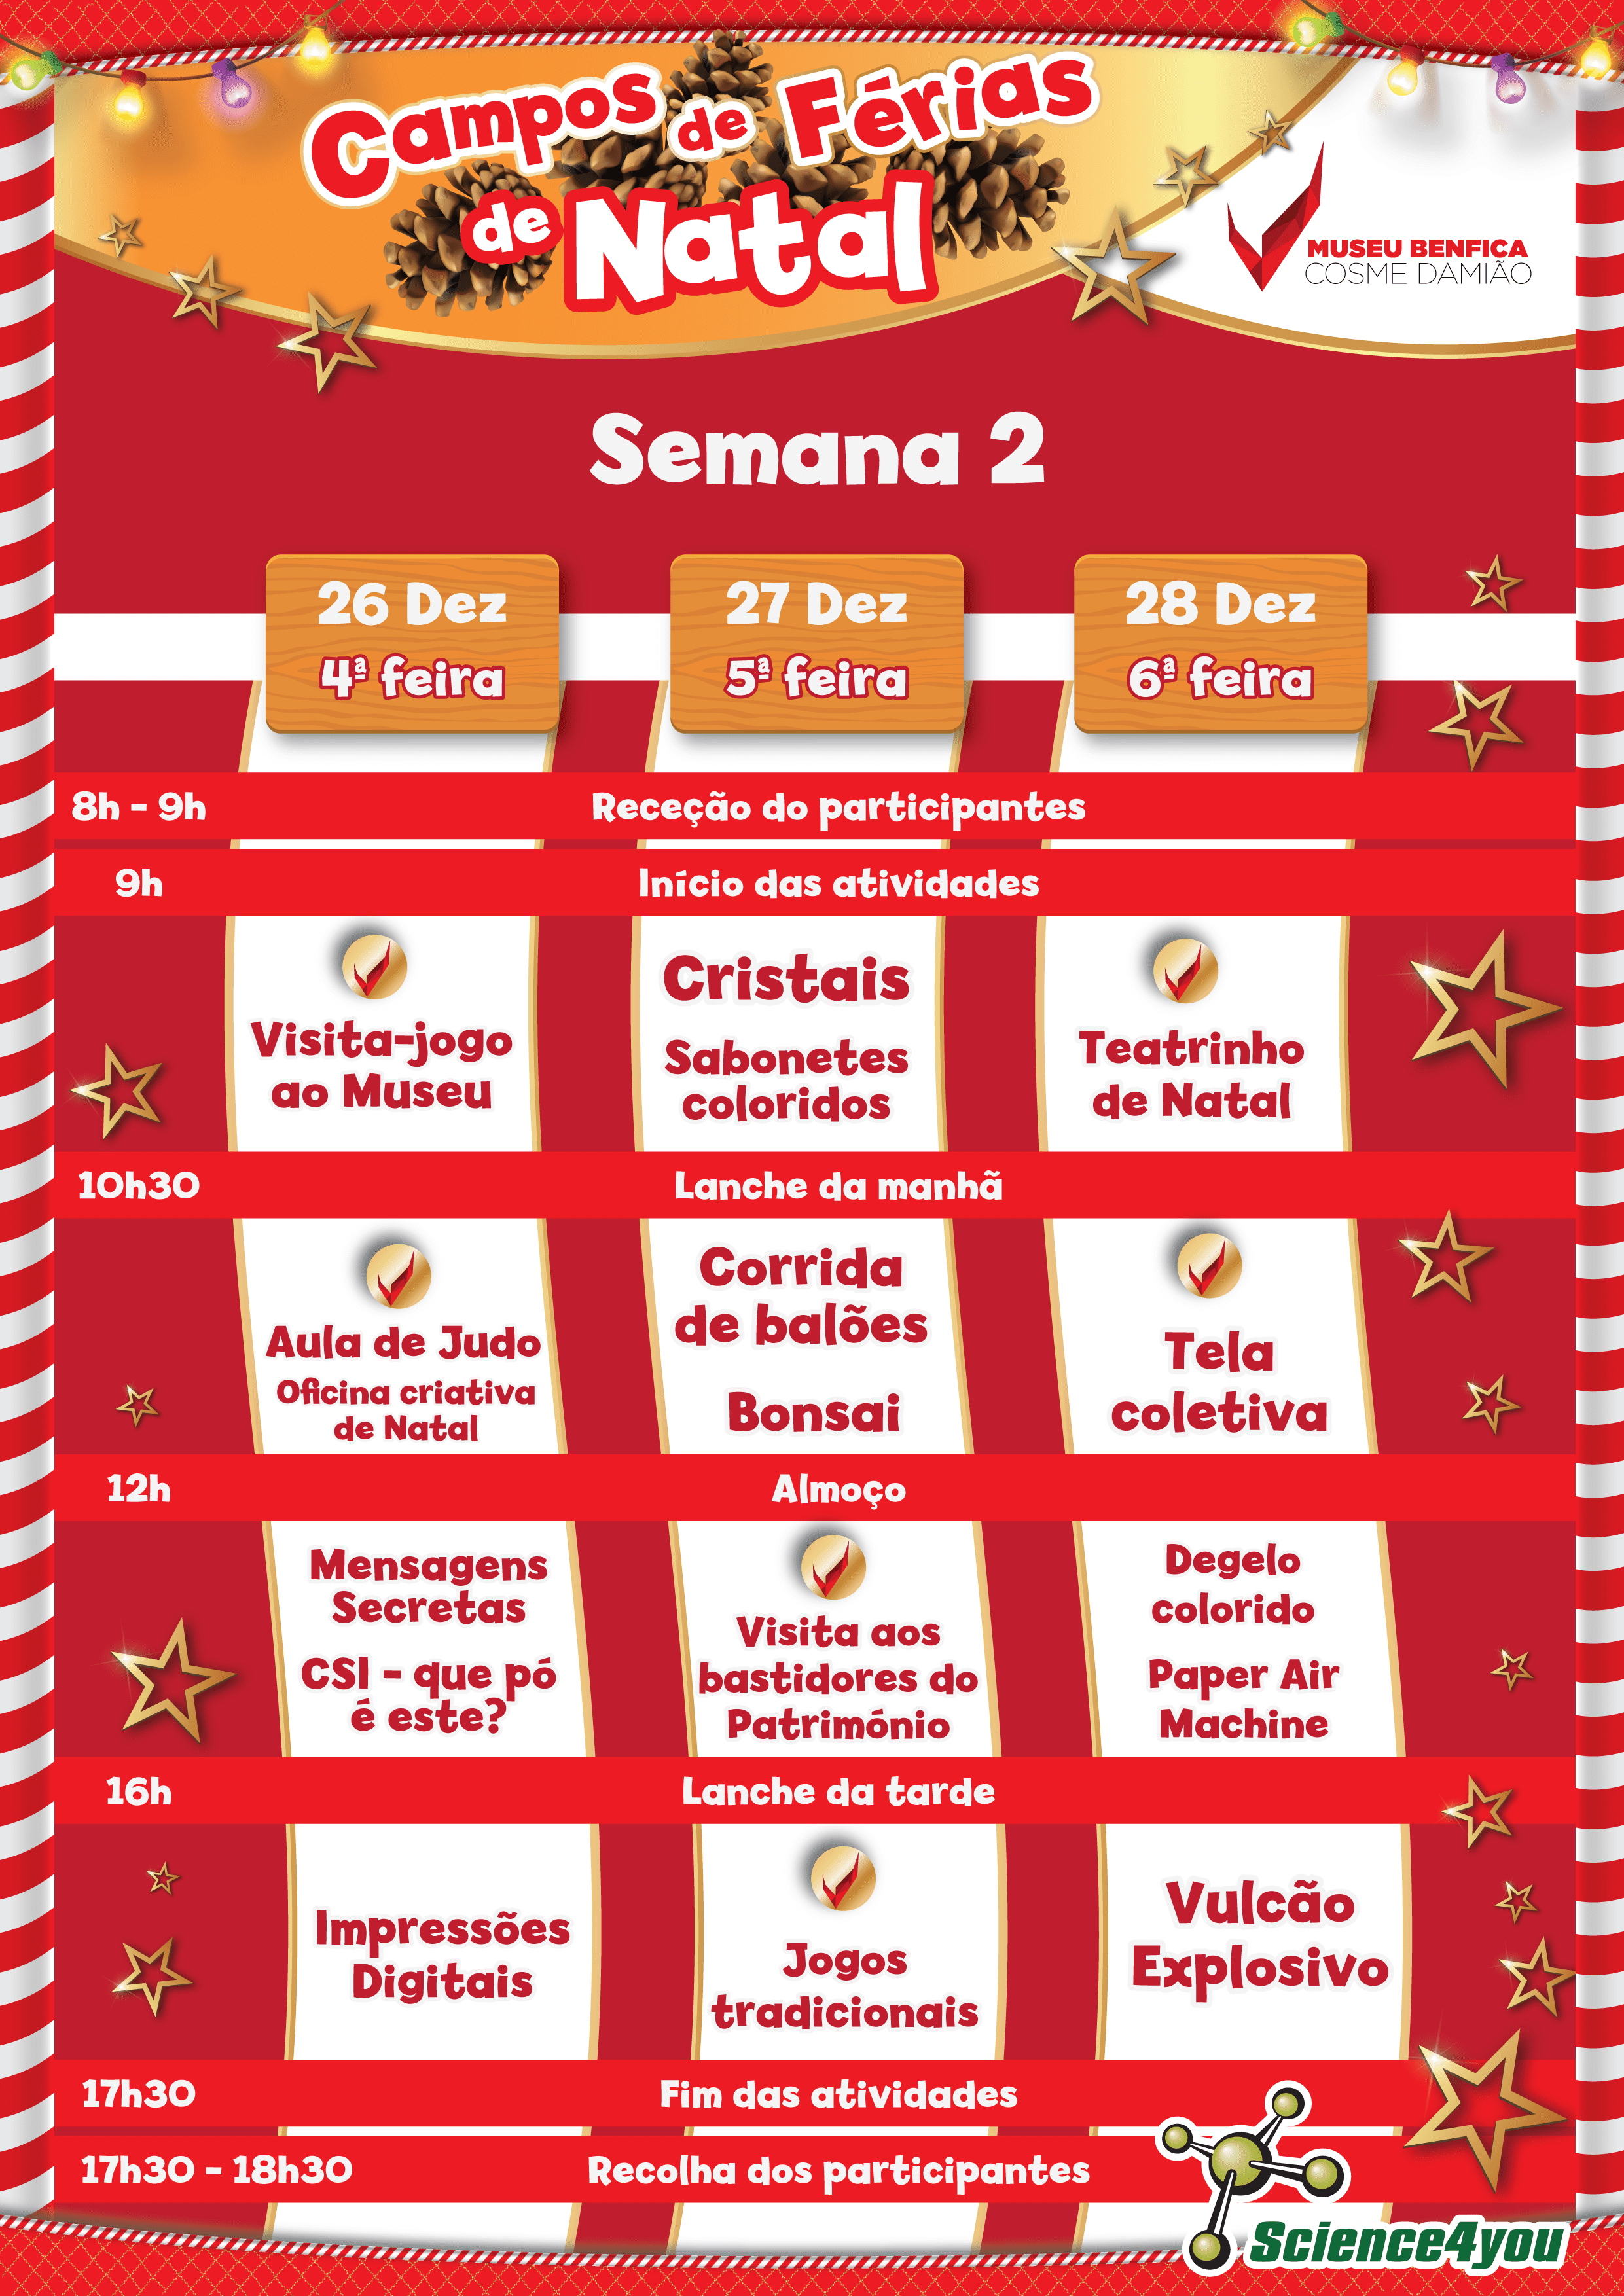 férias de natal science4you benfica 2 semana